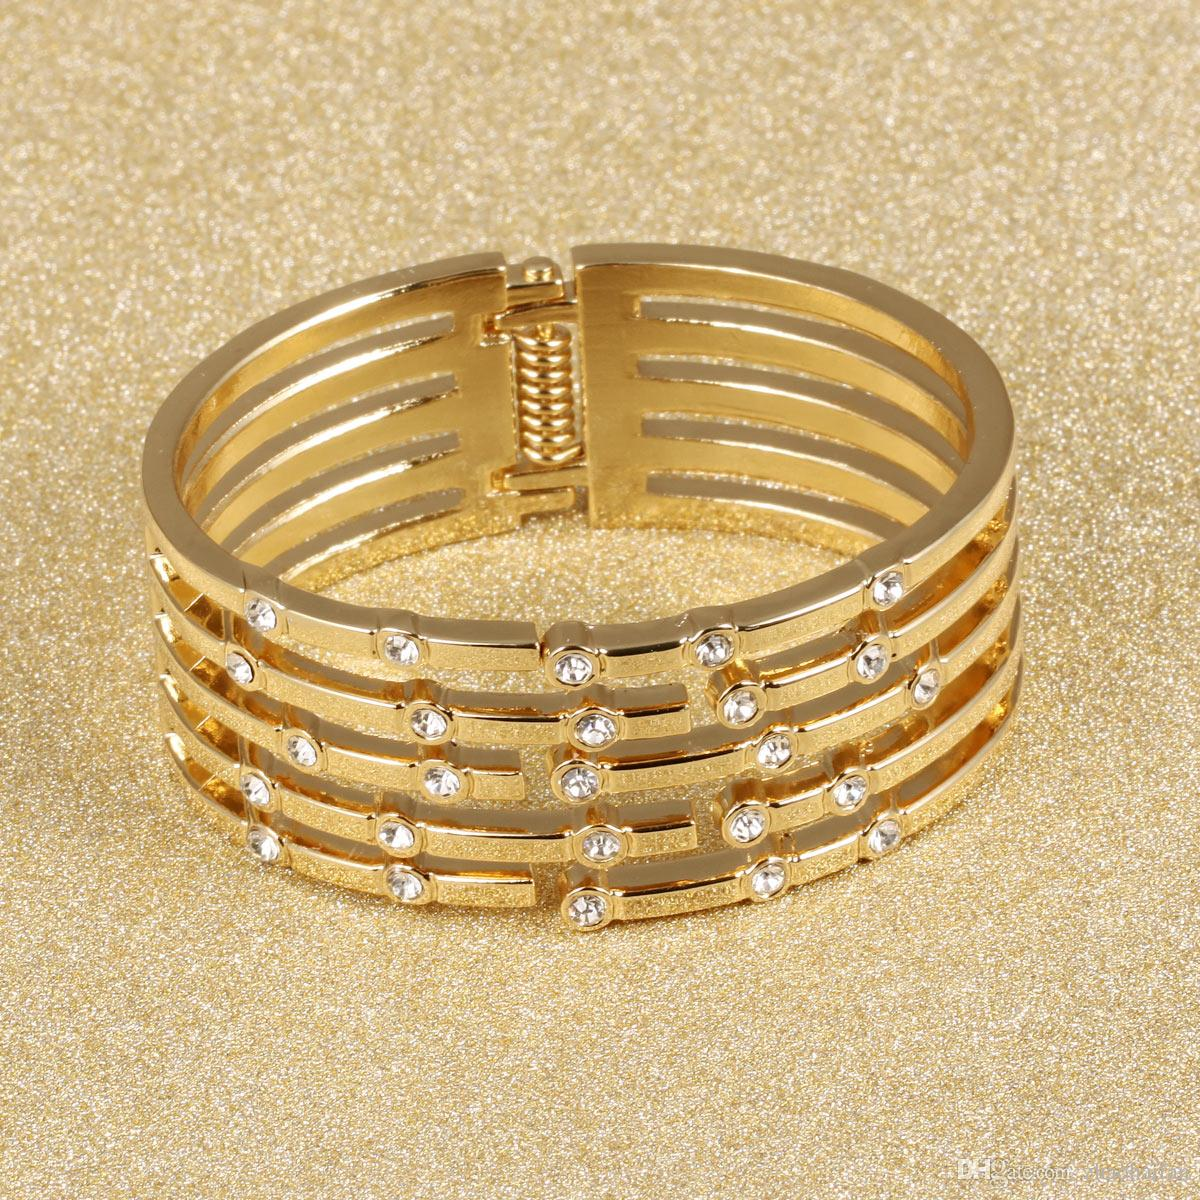 Gold Plated Bangle Woman Jewelry Wide Bracelet Open Bangle For ...